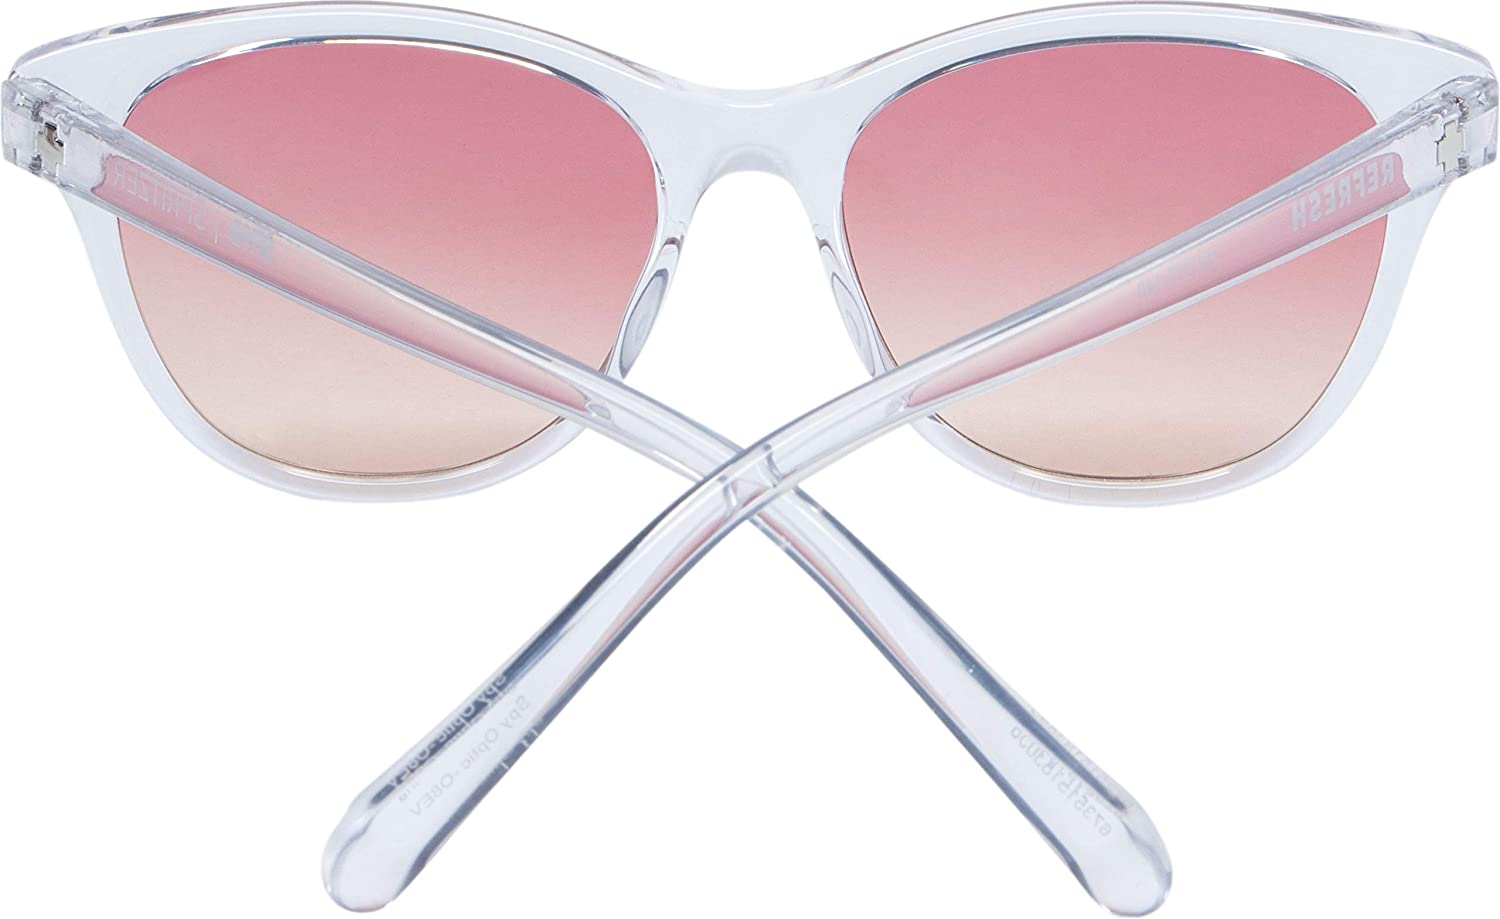 Spritzer Cat-Eye Style Sunglasses for Men and Women REFRESH Collection by SPY OPTIC A Modern Twist on Classic Style